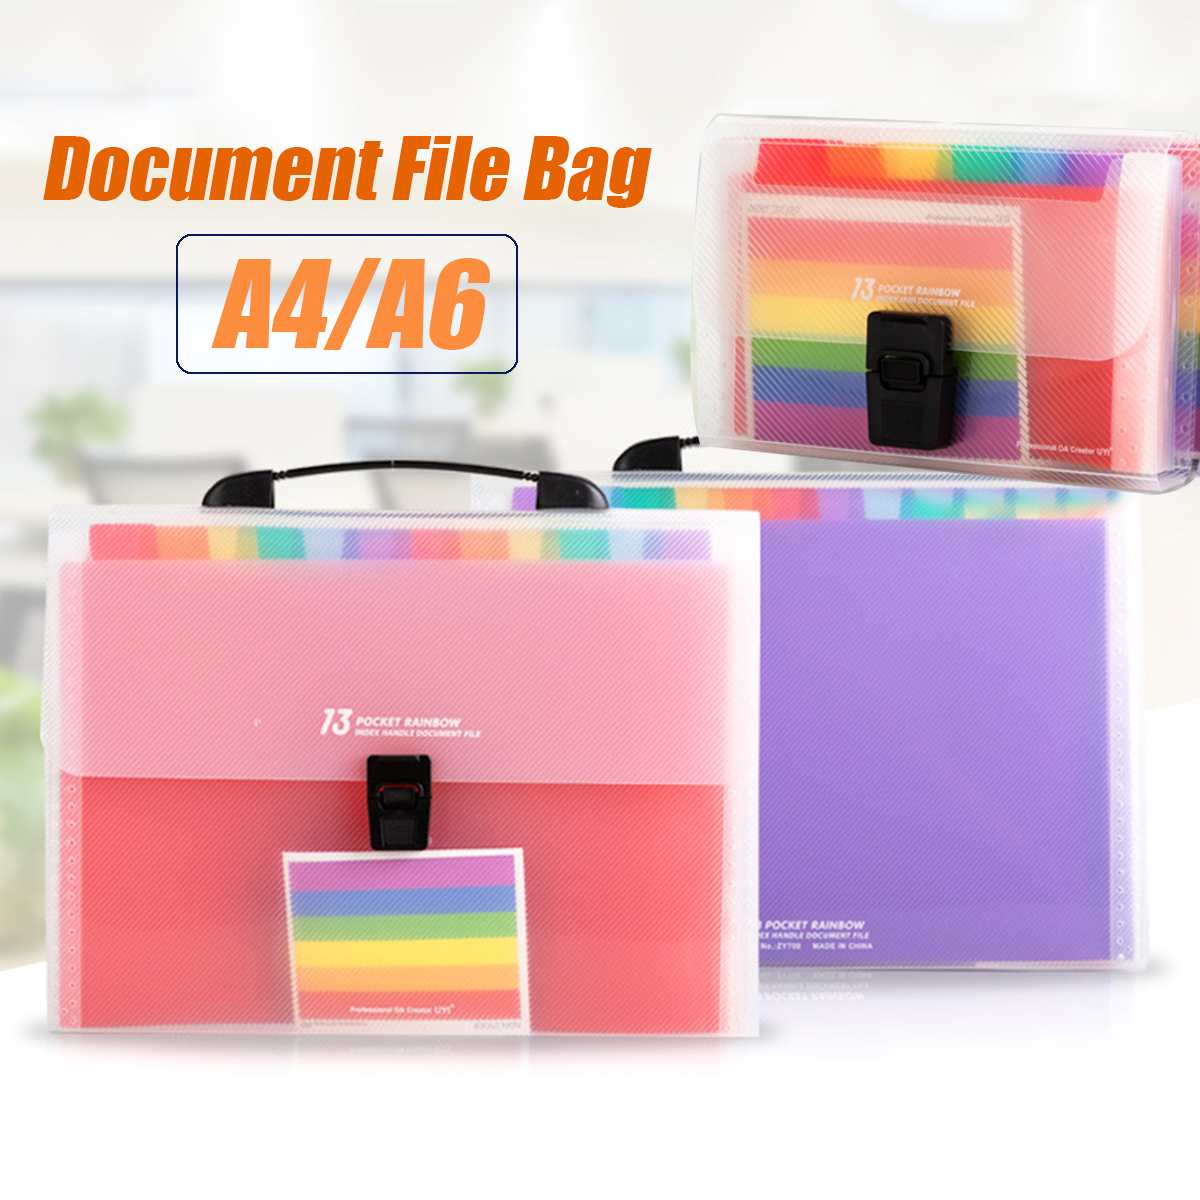 13 Pockets A4 A6 Document Bag Cute Rainbow Color Mini Bill Receipt File Bag Pouch Folder Organizer File Holder Office Supply